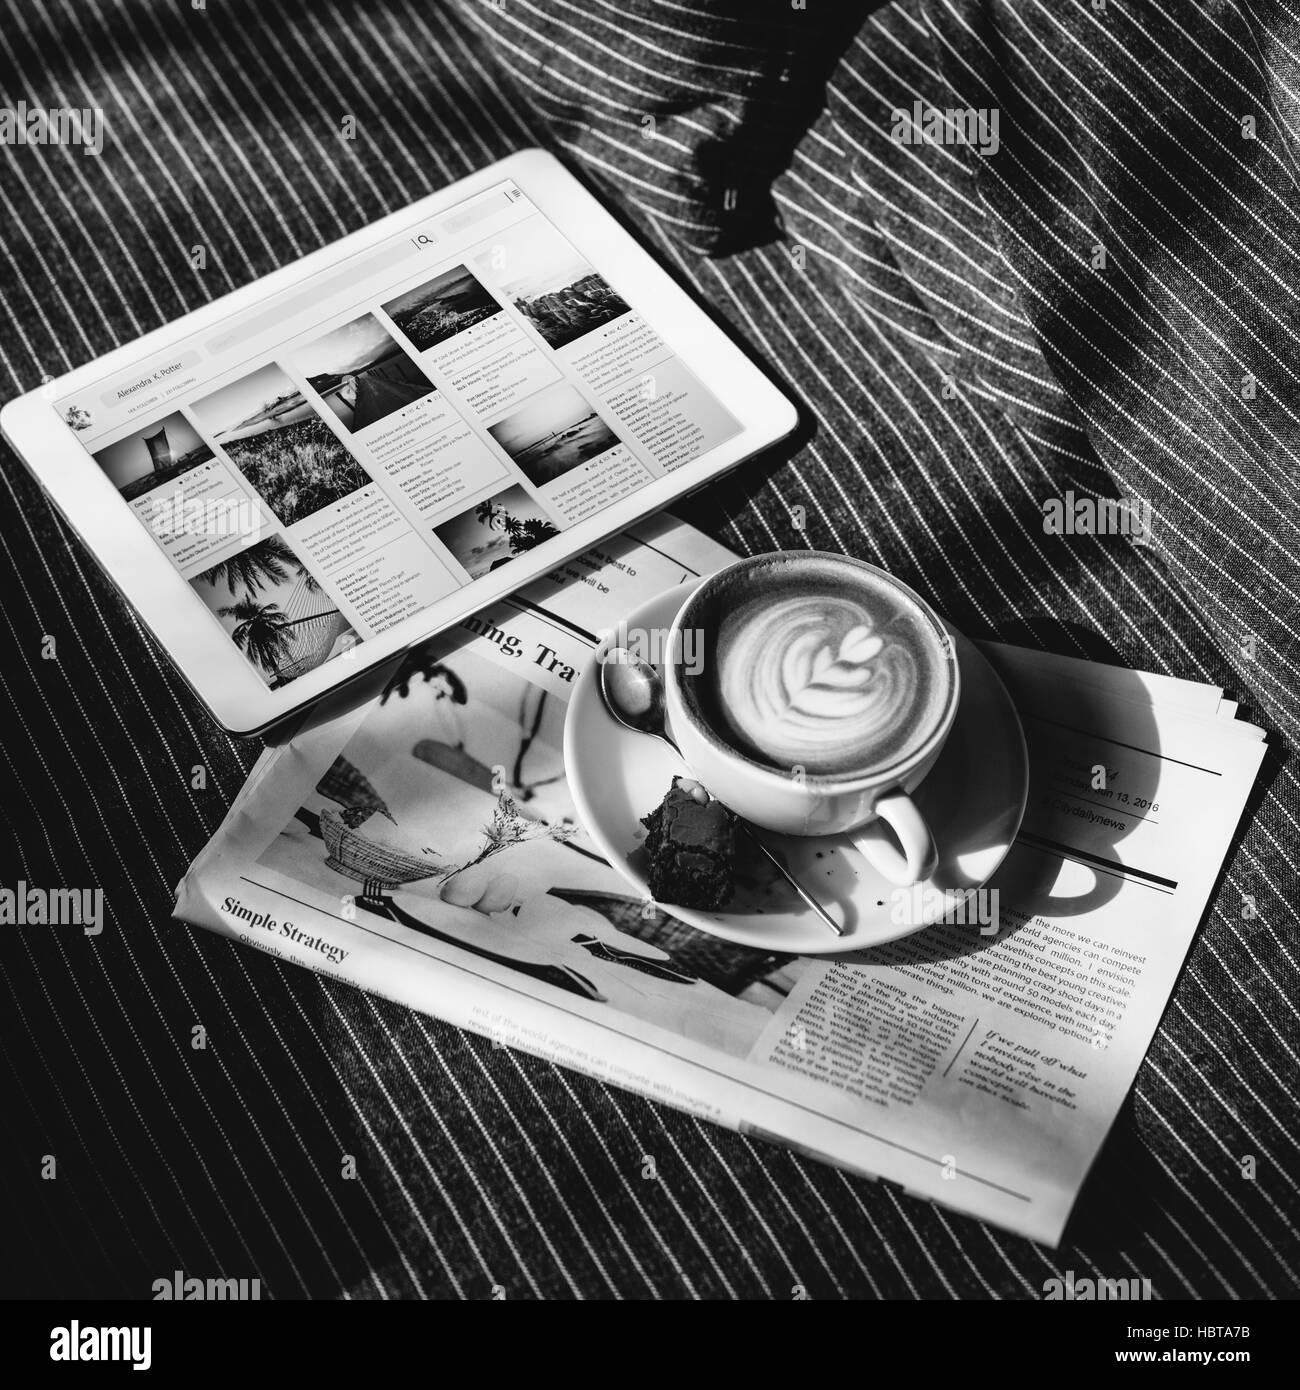 Coffee Americano Espresso Newspaper Couch Brownie Digital Tablet Concept - Stock Image